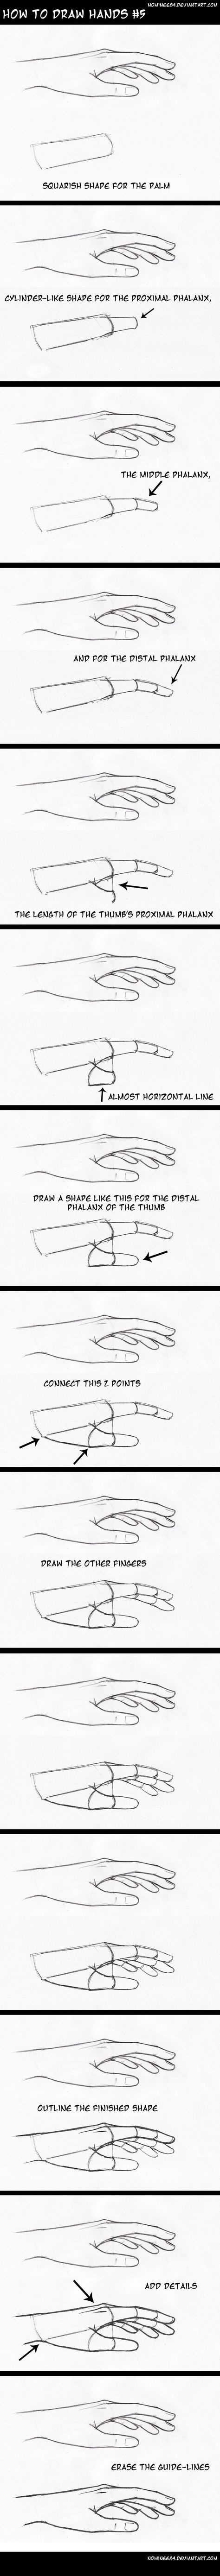 52 best 123 images on pinterest drawing ideas drawing stuff and